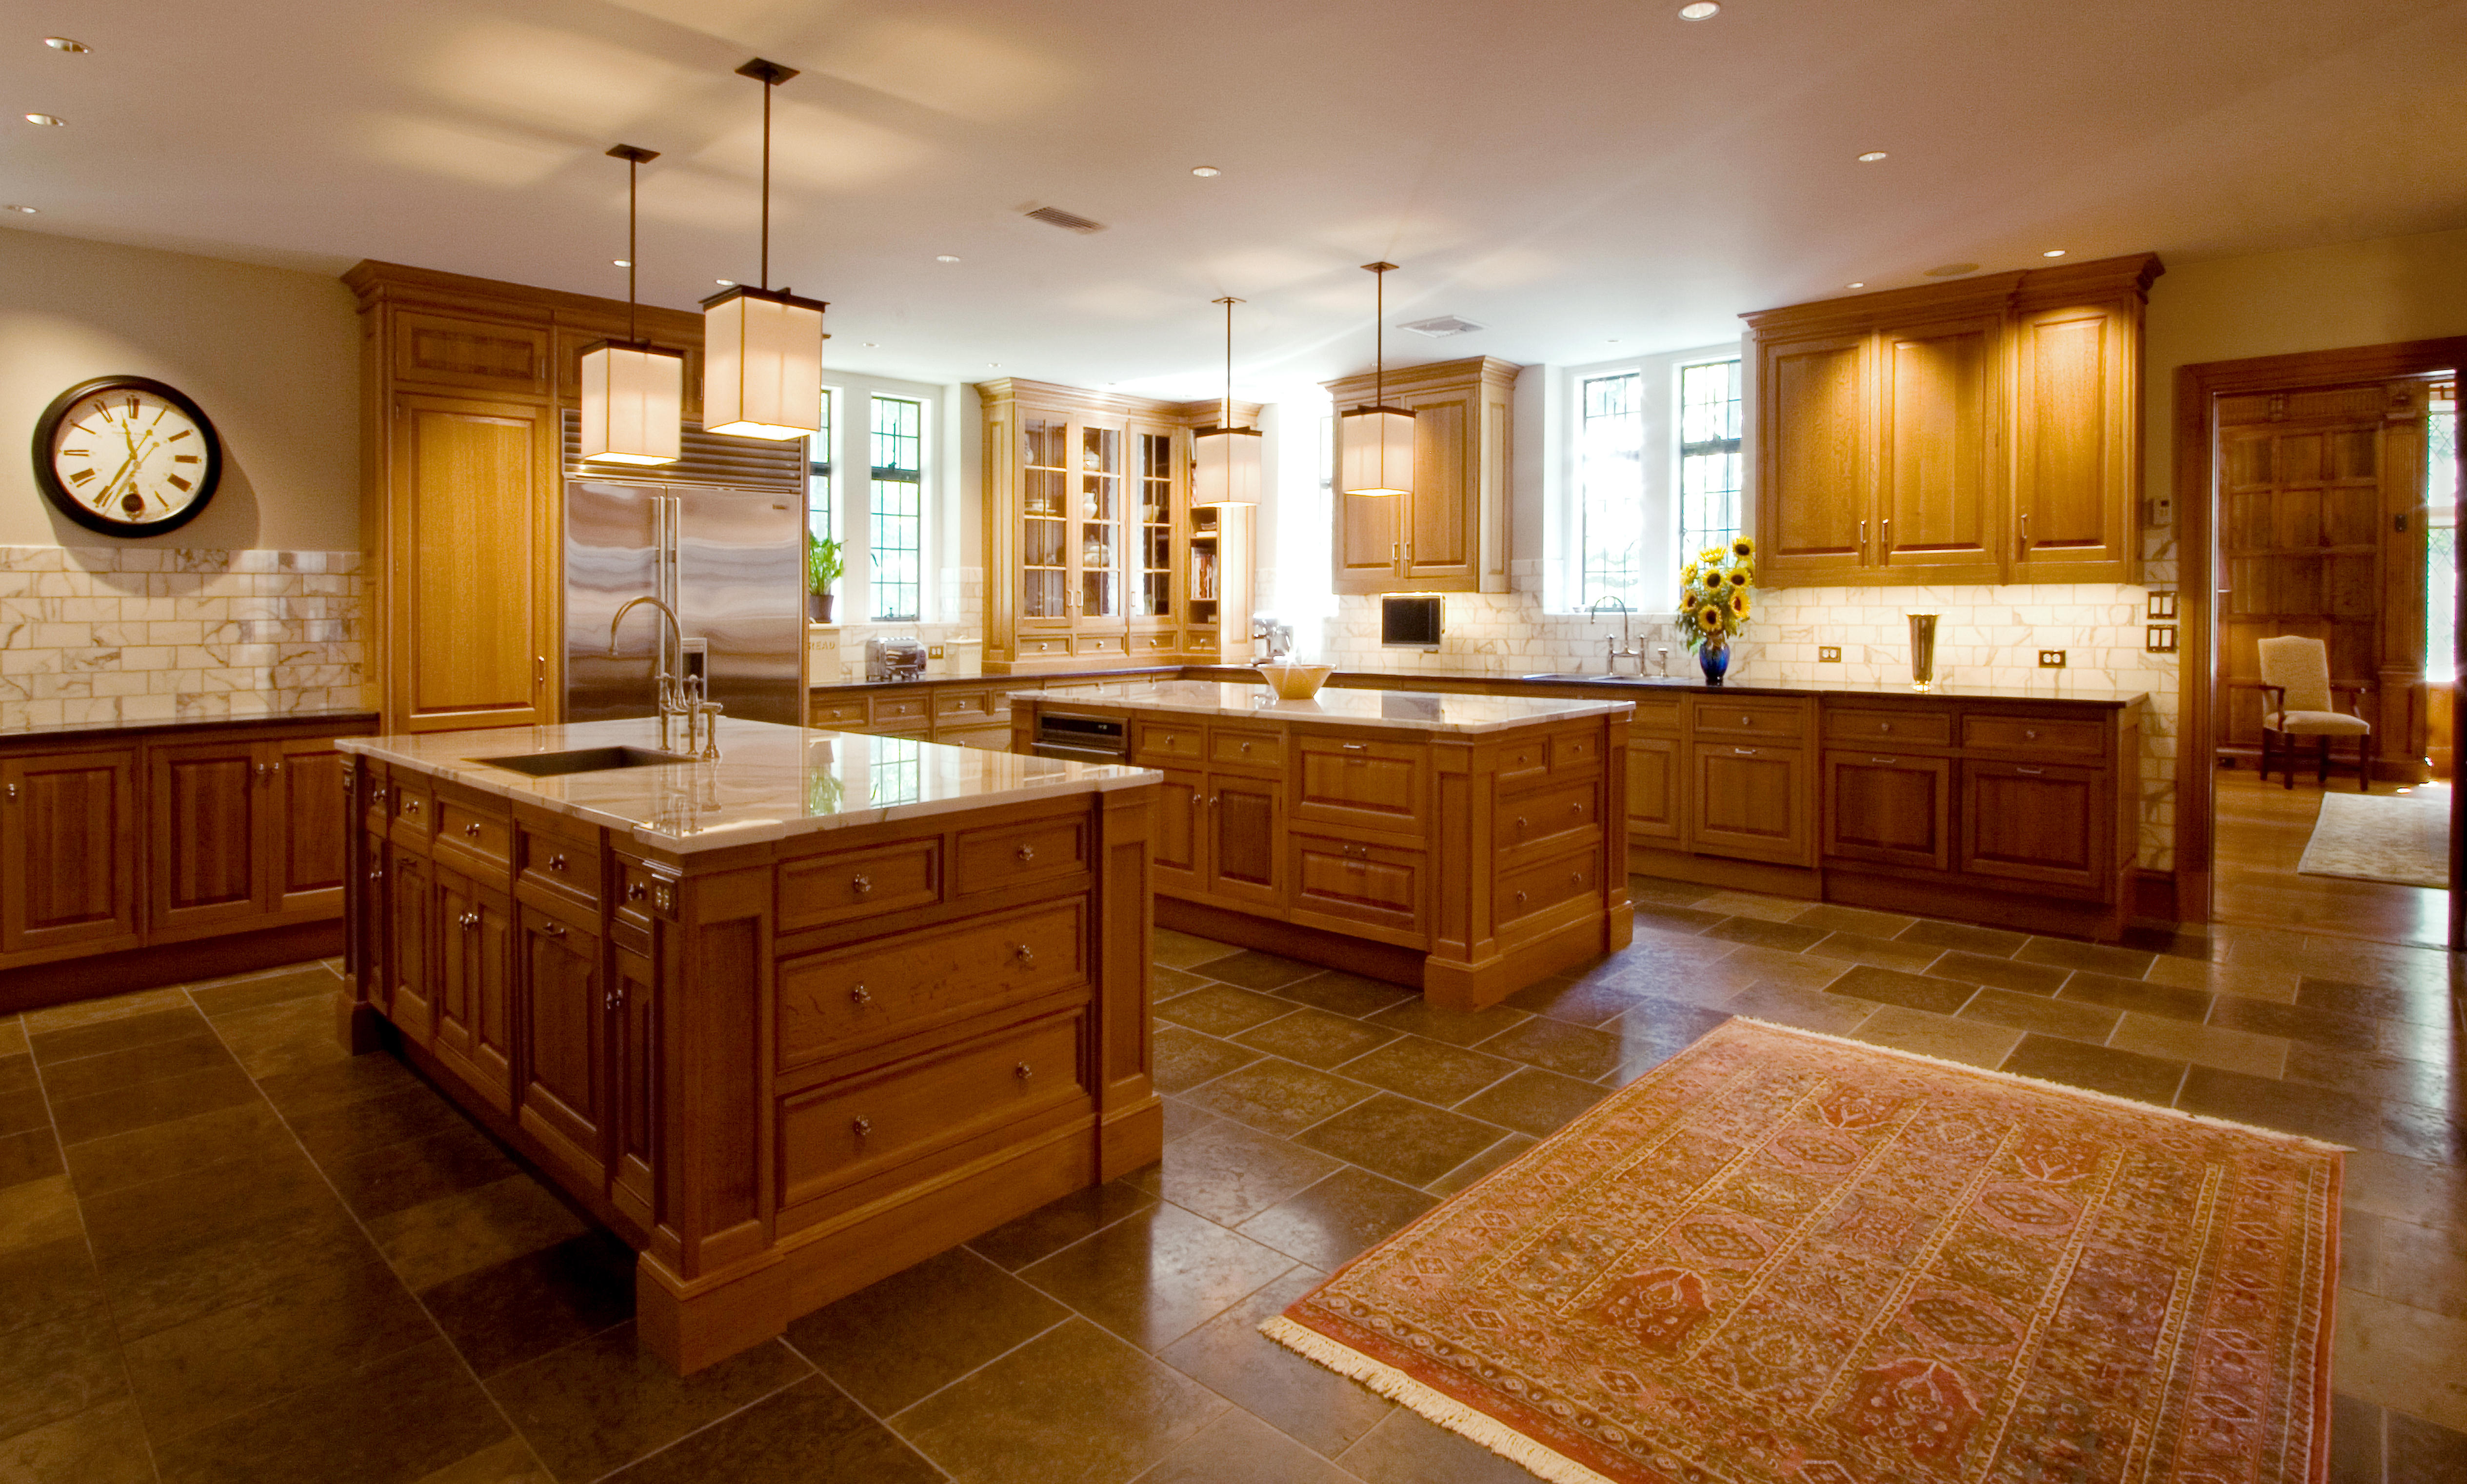 Kitchen Island With Seating And Storage Photo 3